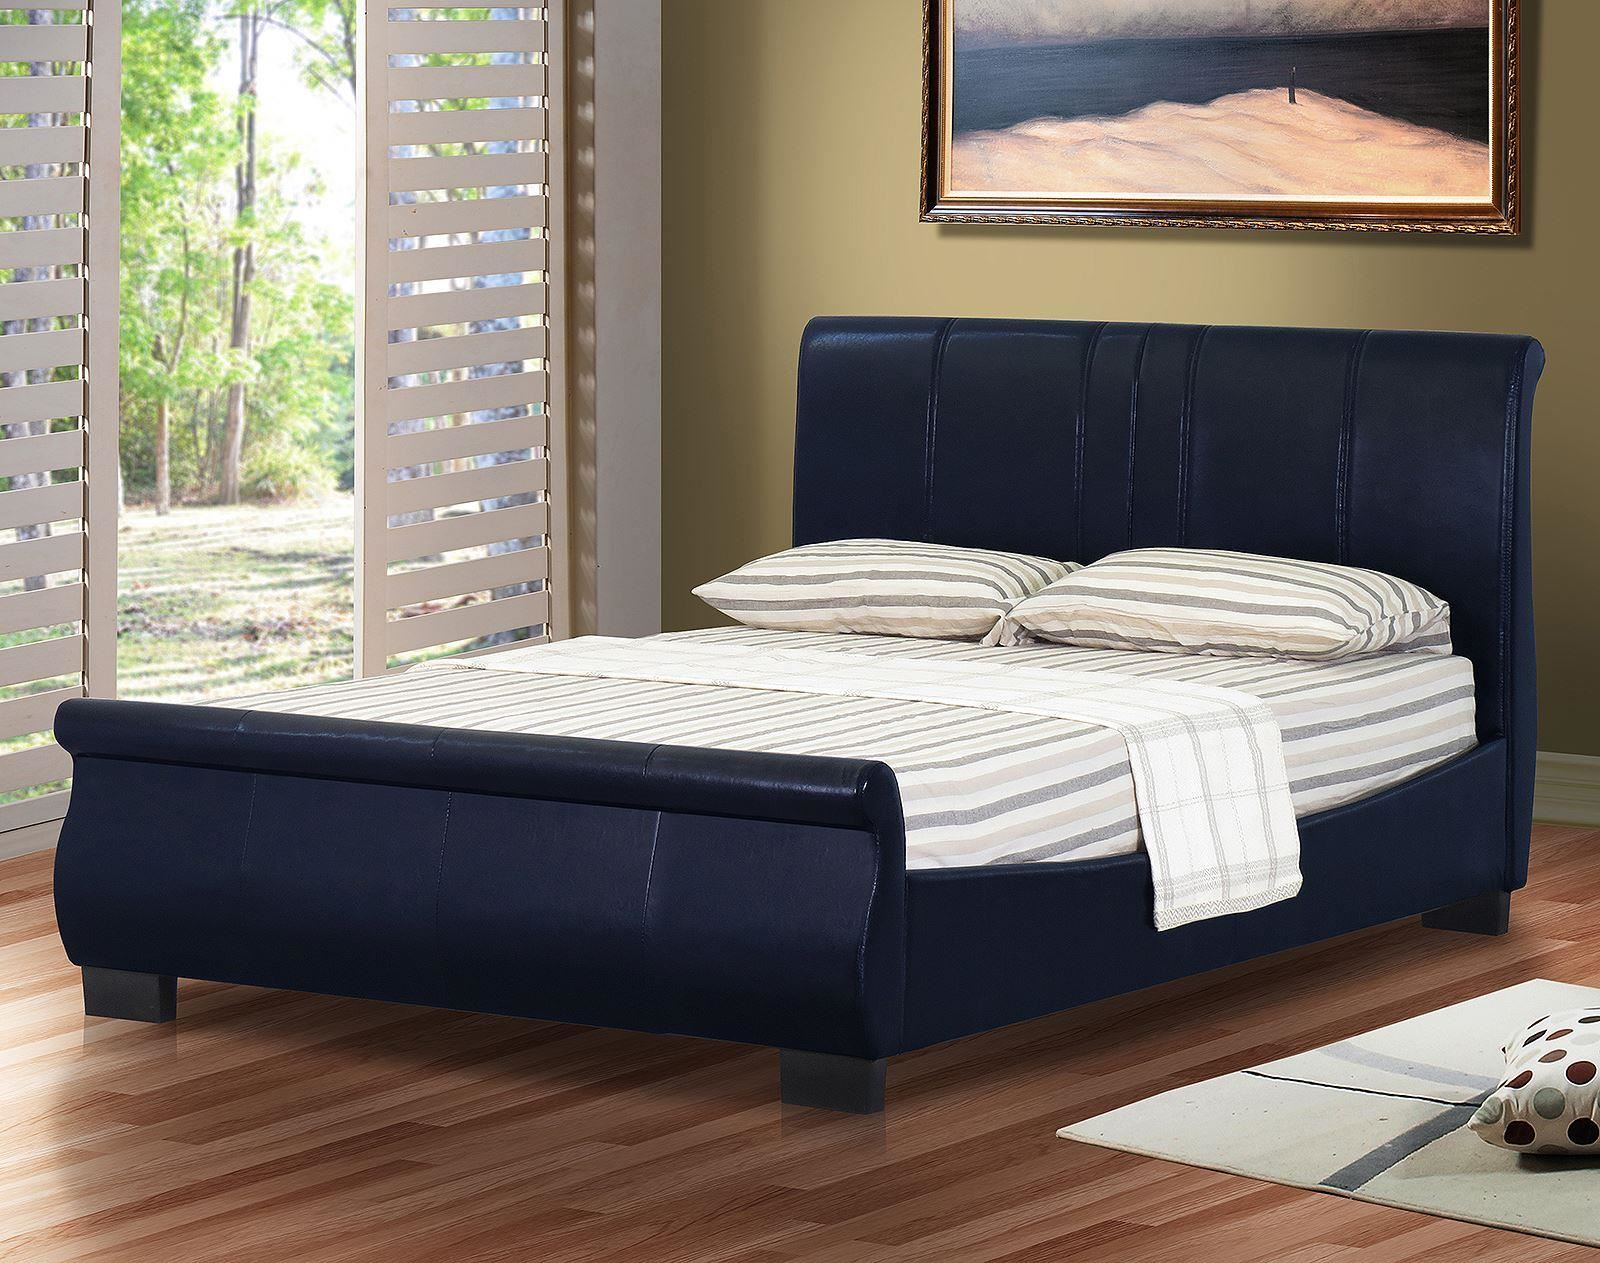 Home page  Zayna Furniture amp Mattress